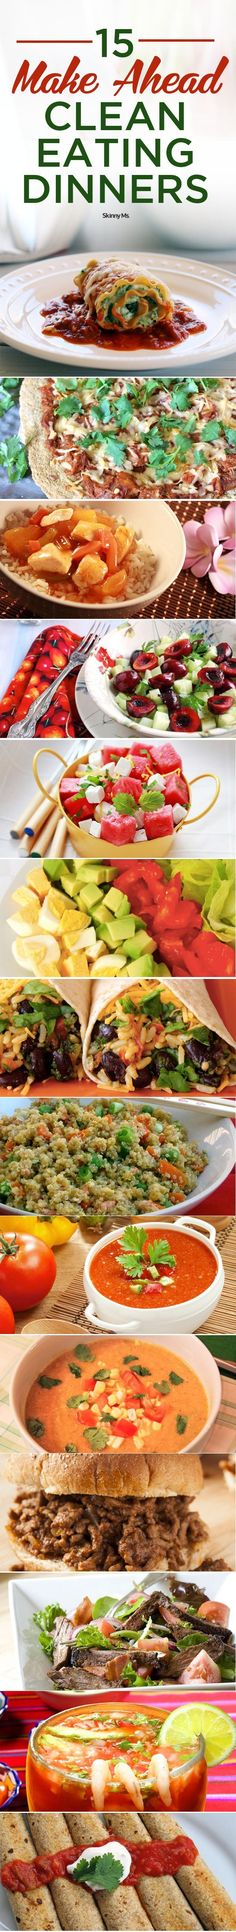 During the week, it is nice to have food that I can just grab and go with. These 15 Make Ahead Clean-Eating Dinners are excellent for that! #recipes #planahead #menuplanning